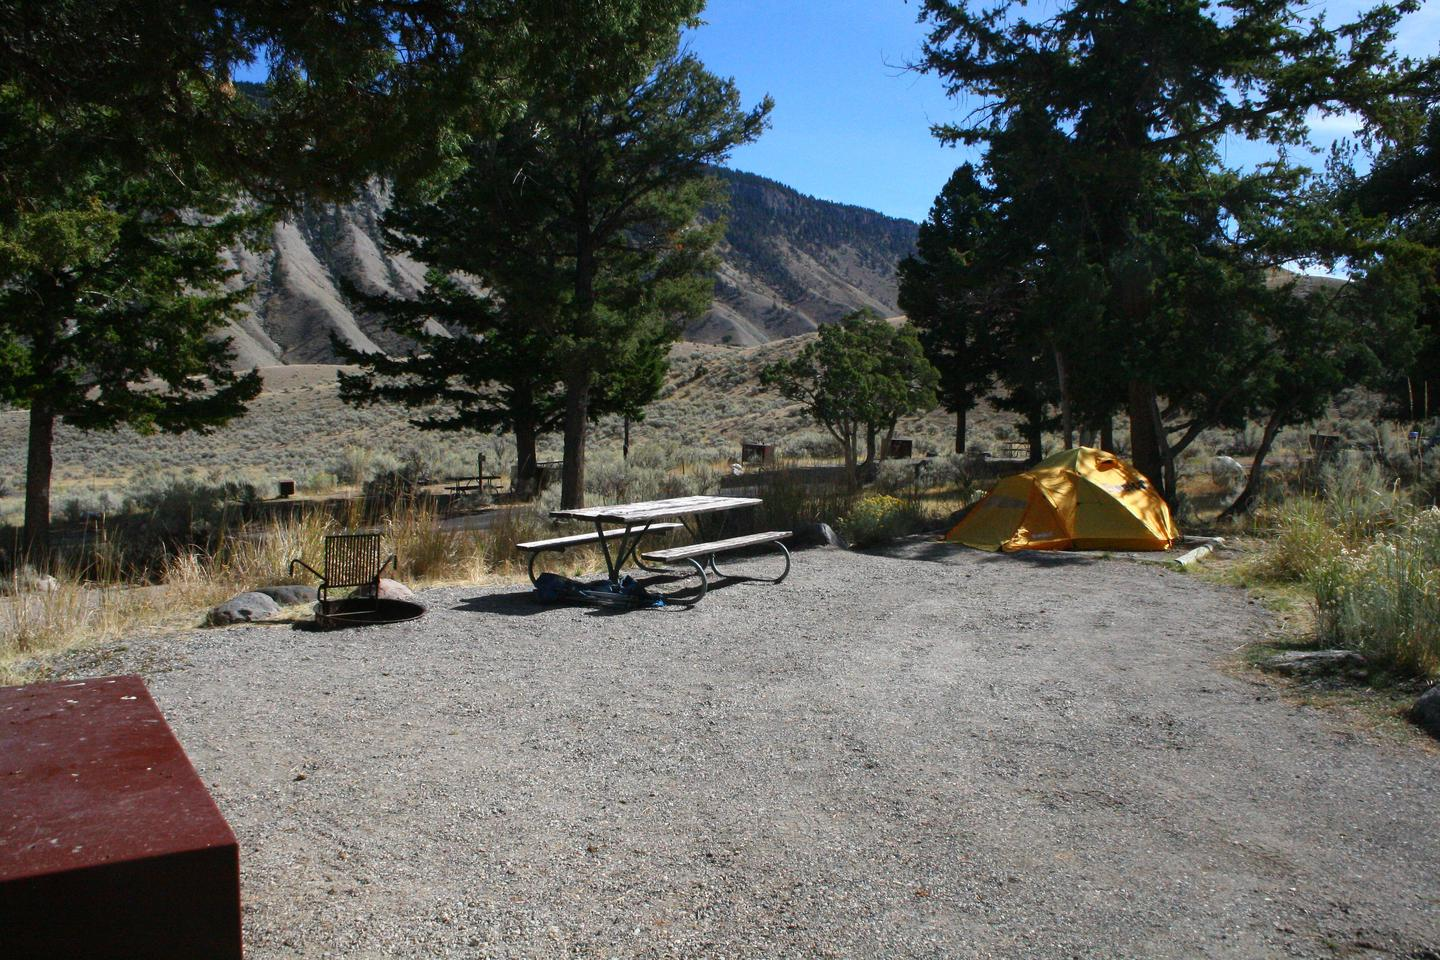 Mammoth Hot Springs Campground Site 69Mammoth Campsite #69, looking north